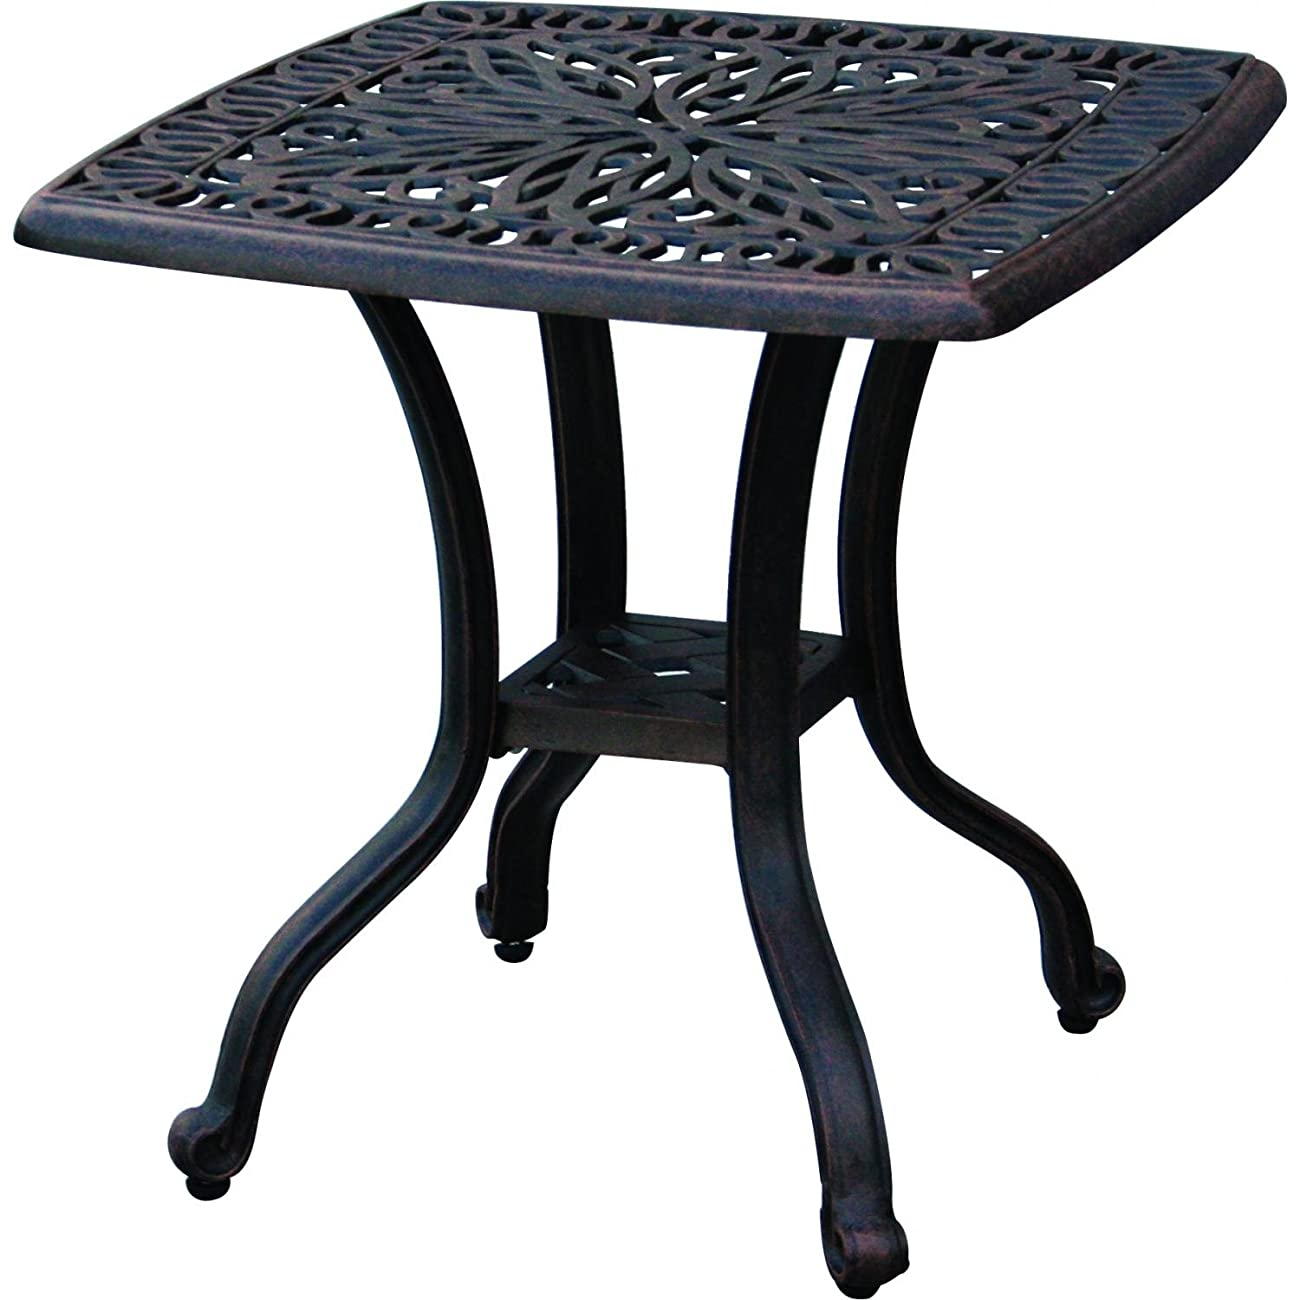 Darlee Elisabeth Cast Aluminum Outdoor Patio End Table - 21 Inch Square - Antique Bronze 0